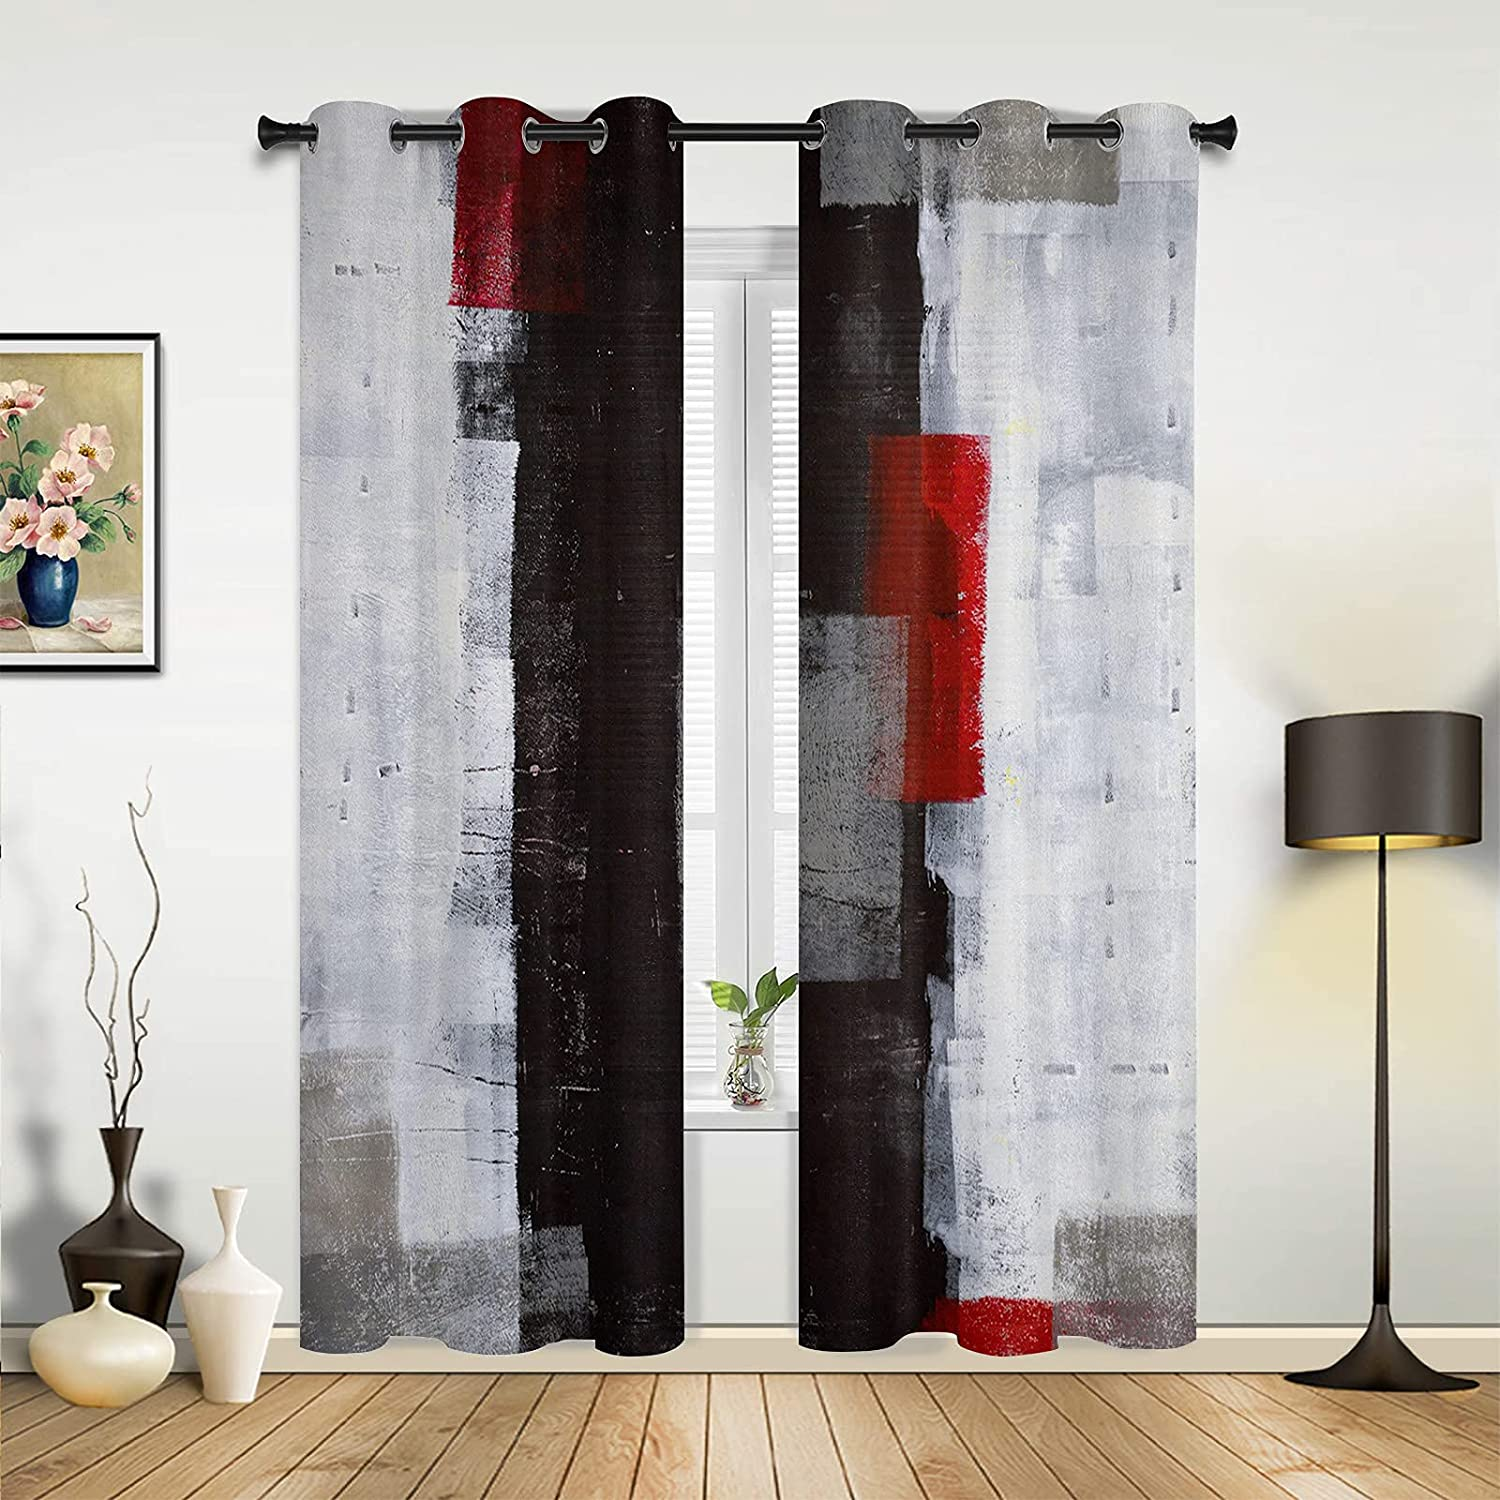 Window Sheer Curtains Gifts for Time sale Bedroom Gradient Room Black Red Living